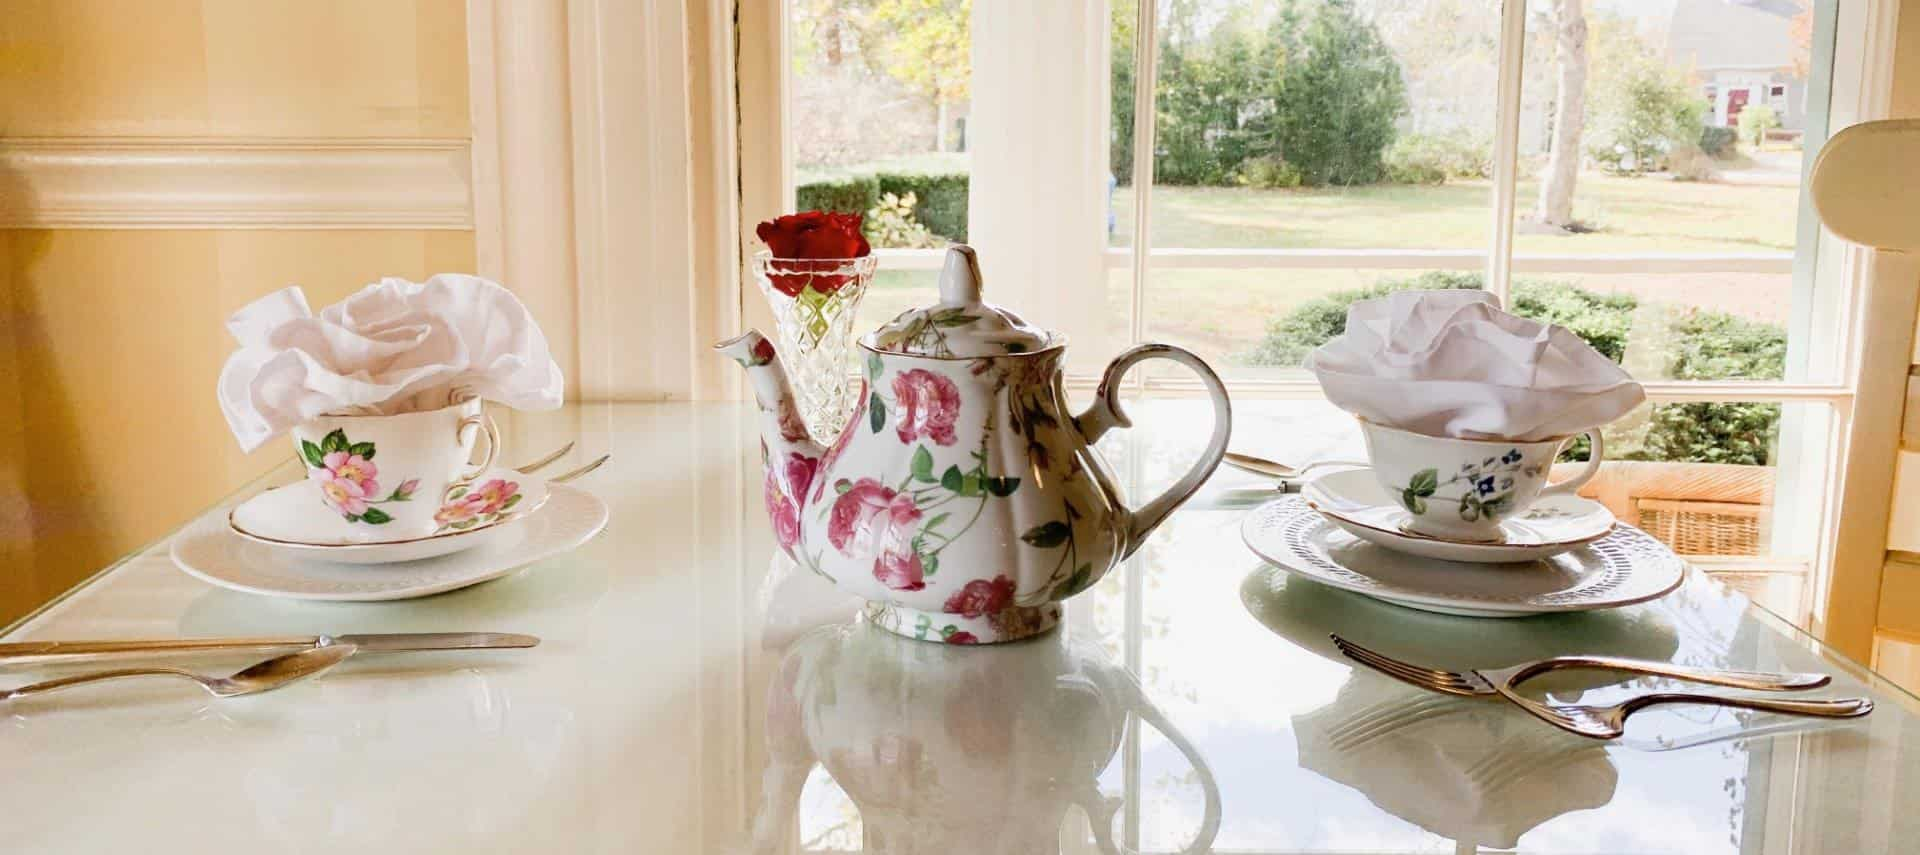 Table with two tea cups and saucers and teapot decorated with pink flowers and green stems